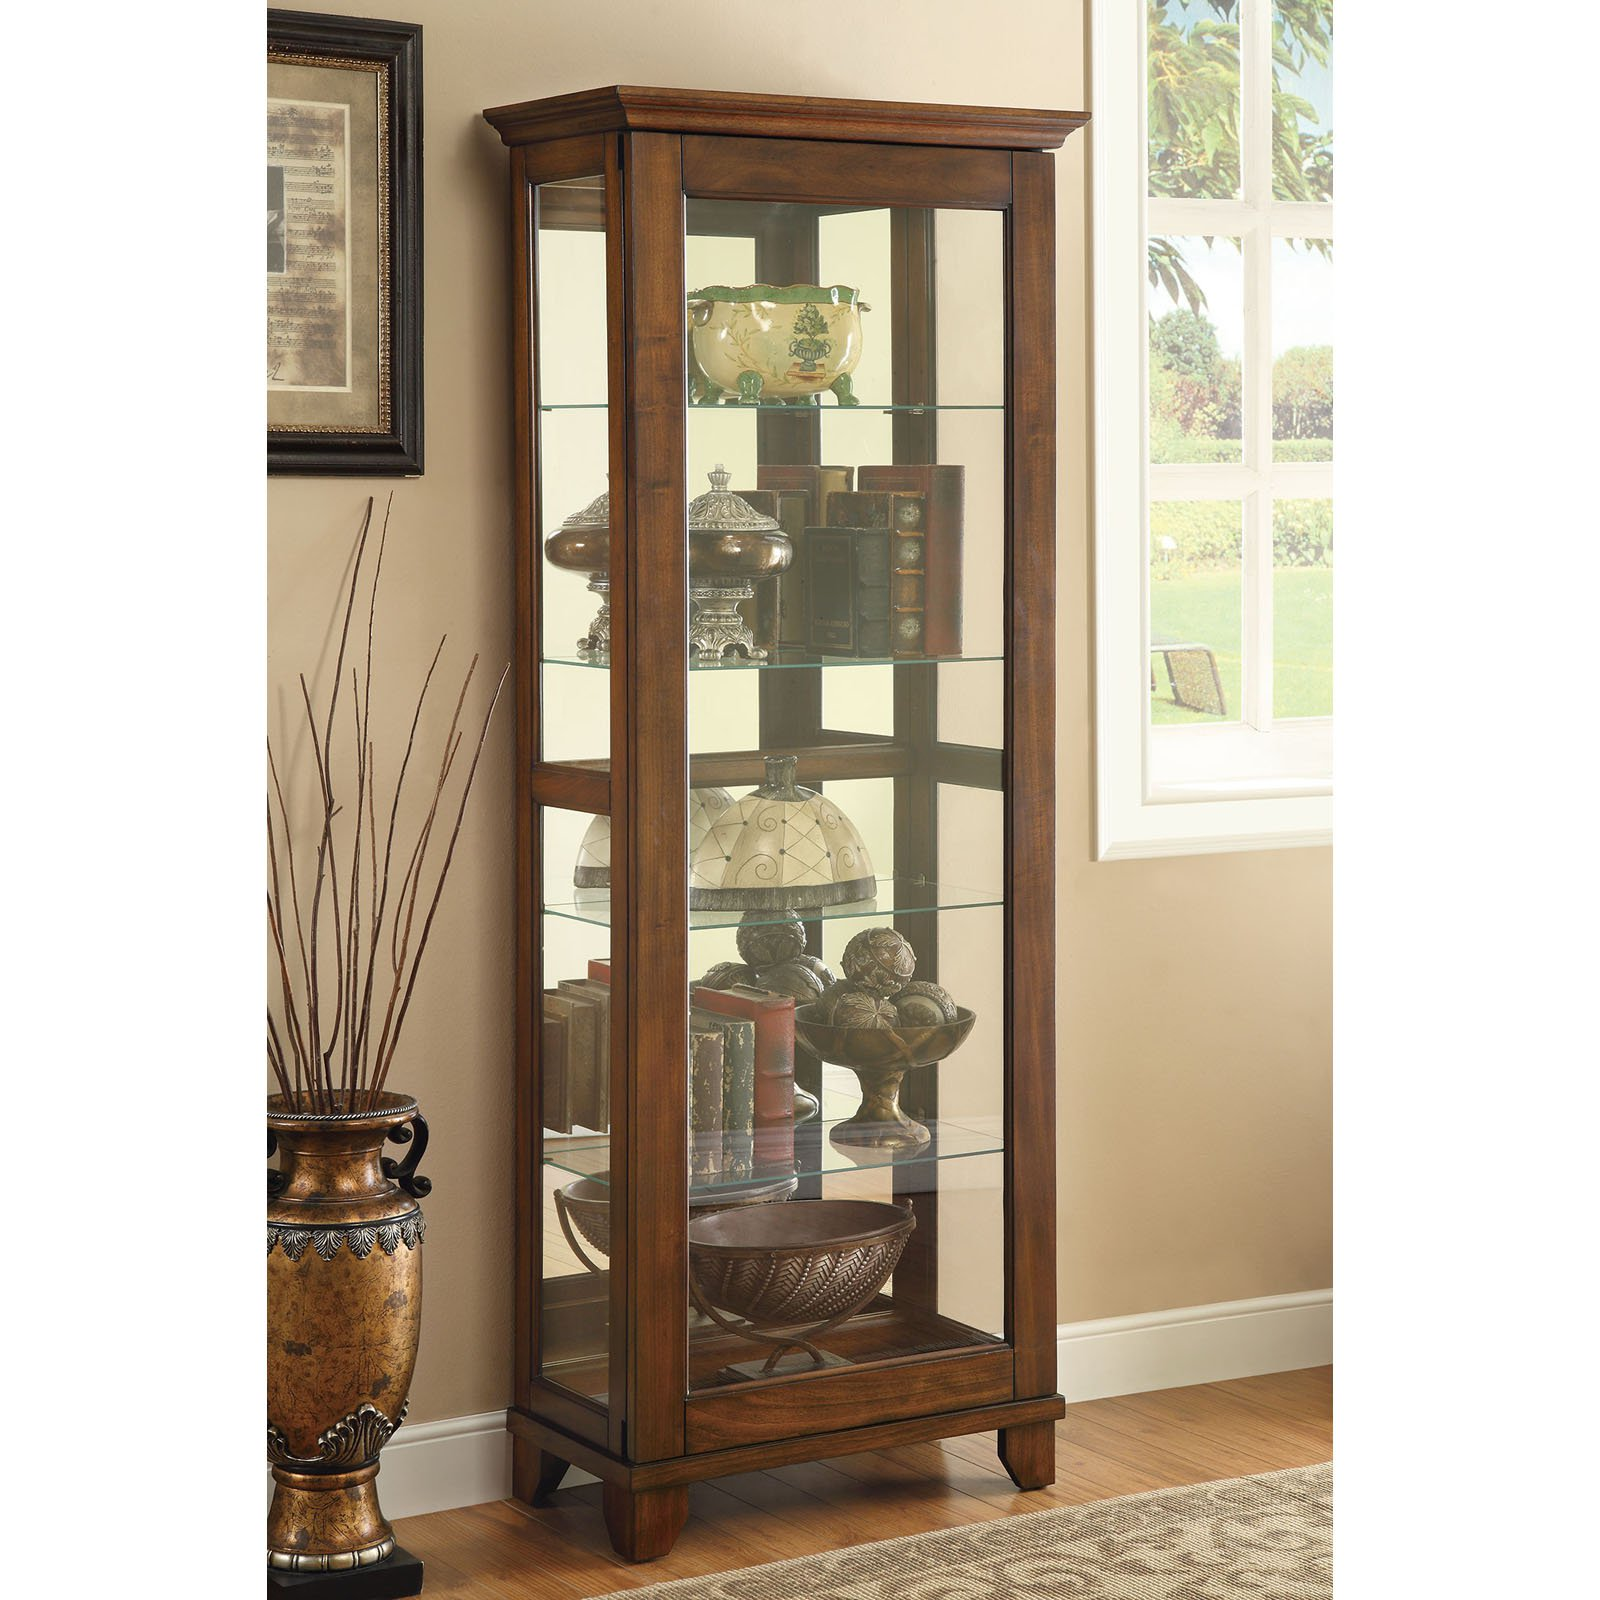 Beau Coaster Company 5 Tiered Curio Cabinet, Warm Brown Finish